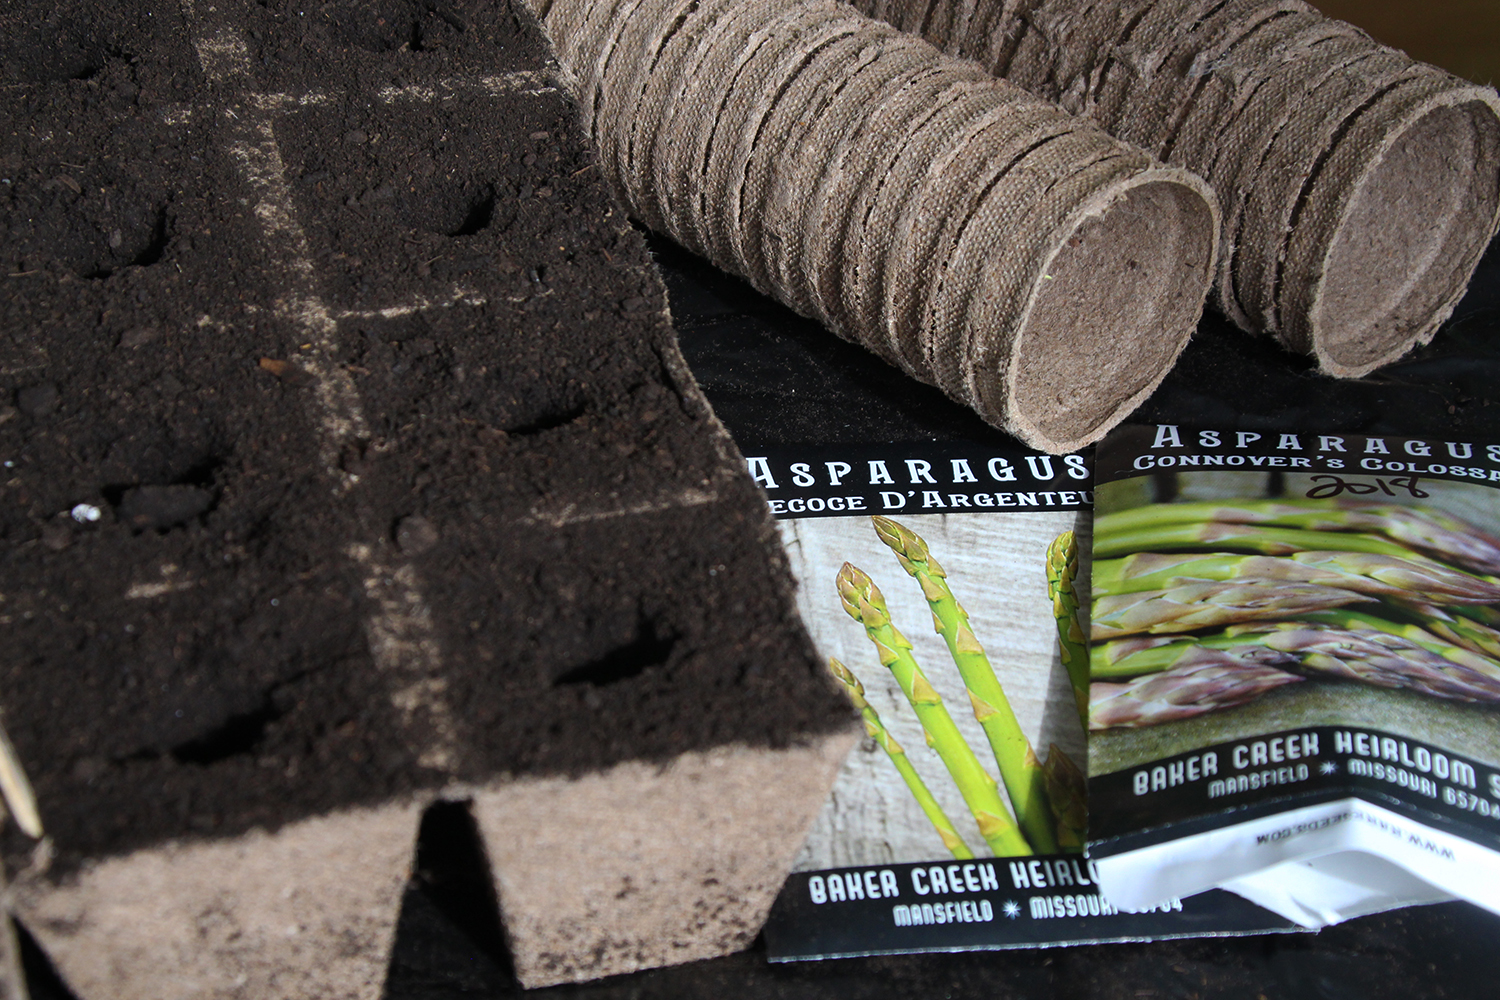 Asparagus seed packets and a tray of dirt.